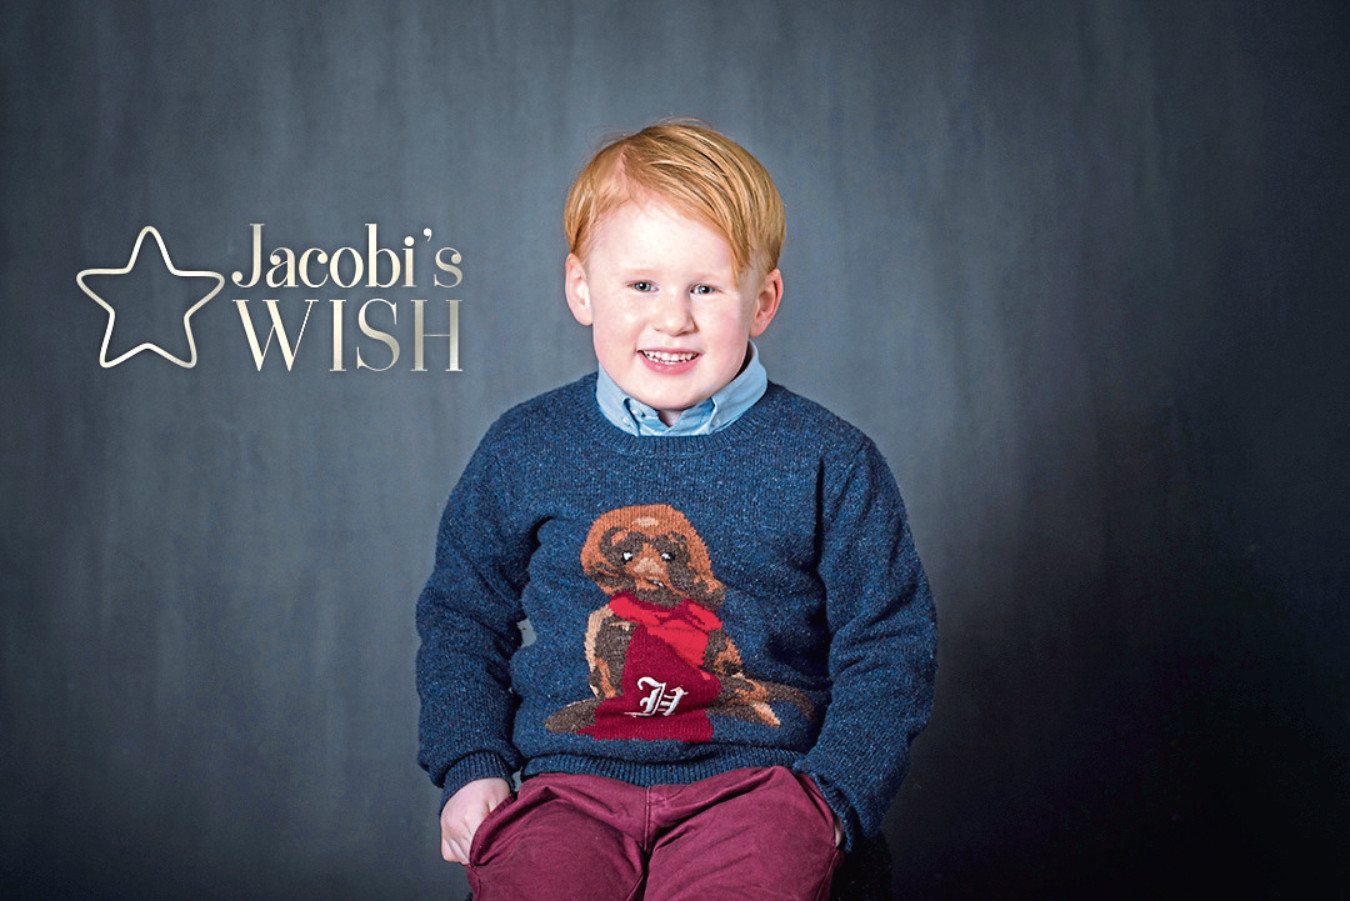 Jacobi Whyte who has Duchenne muscular dystrophy (DMD)